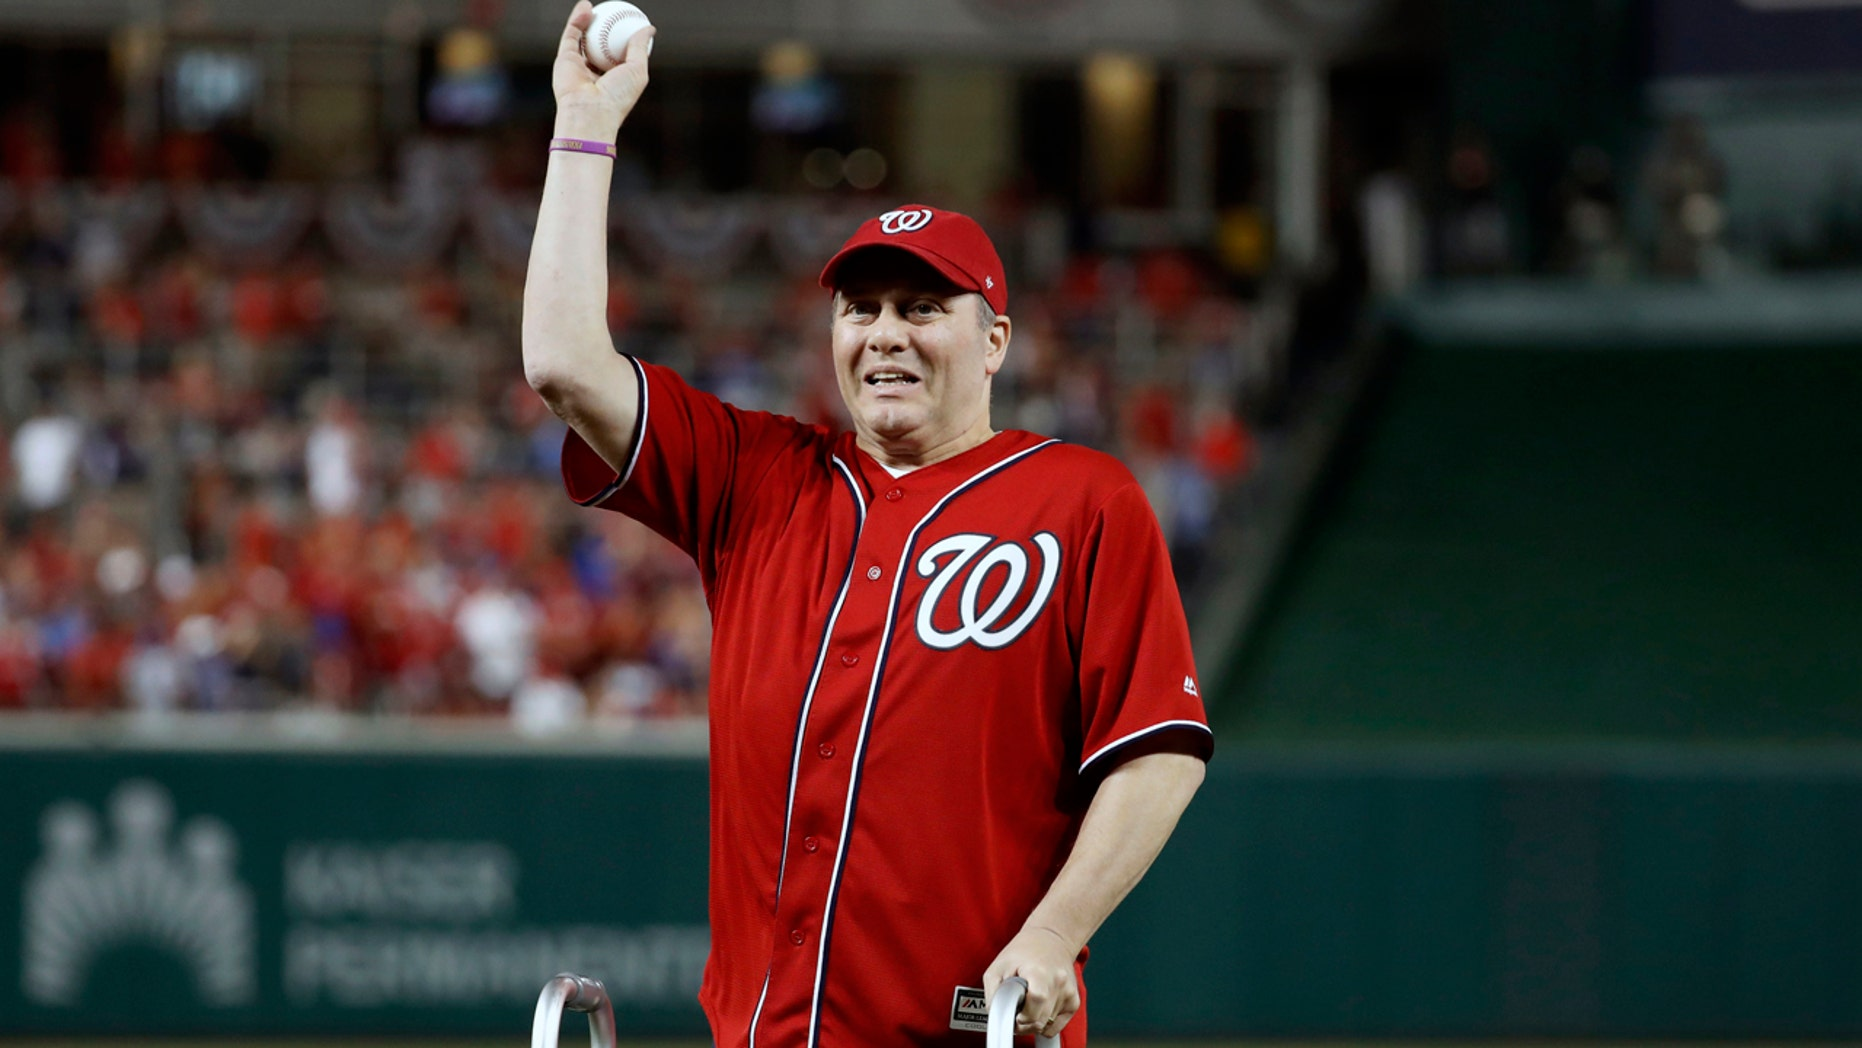 Scalise throwing out the first pitch at Nationals Park before a game last year.